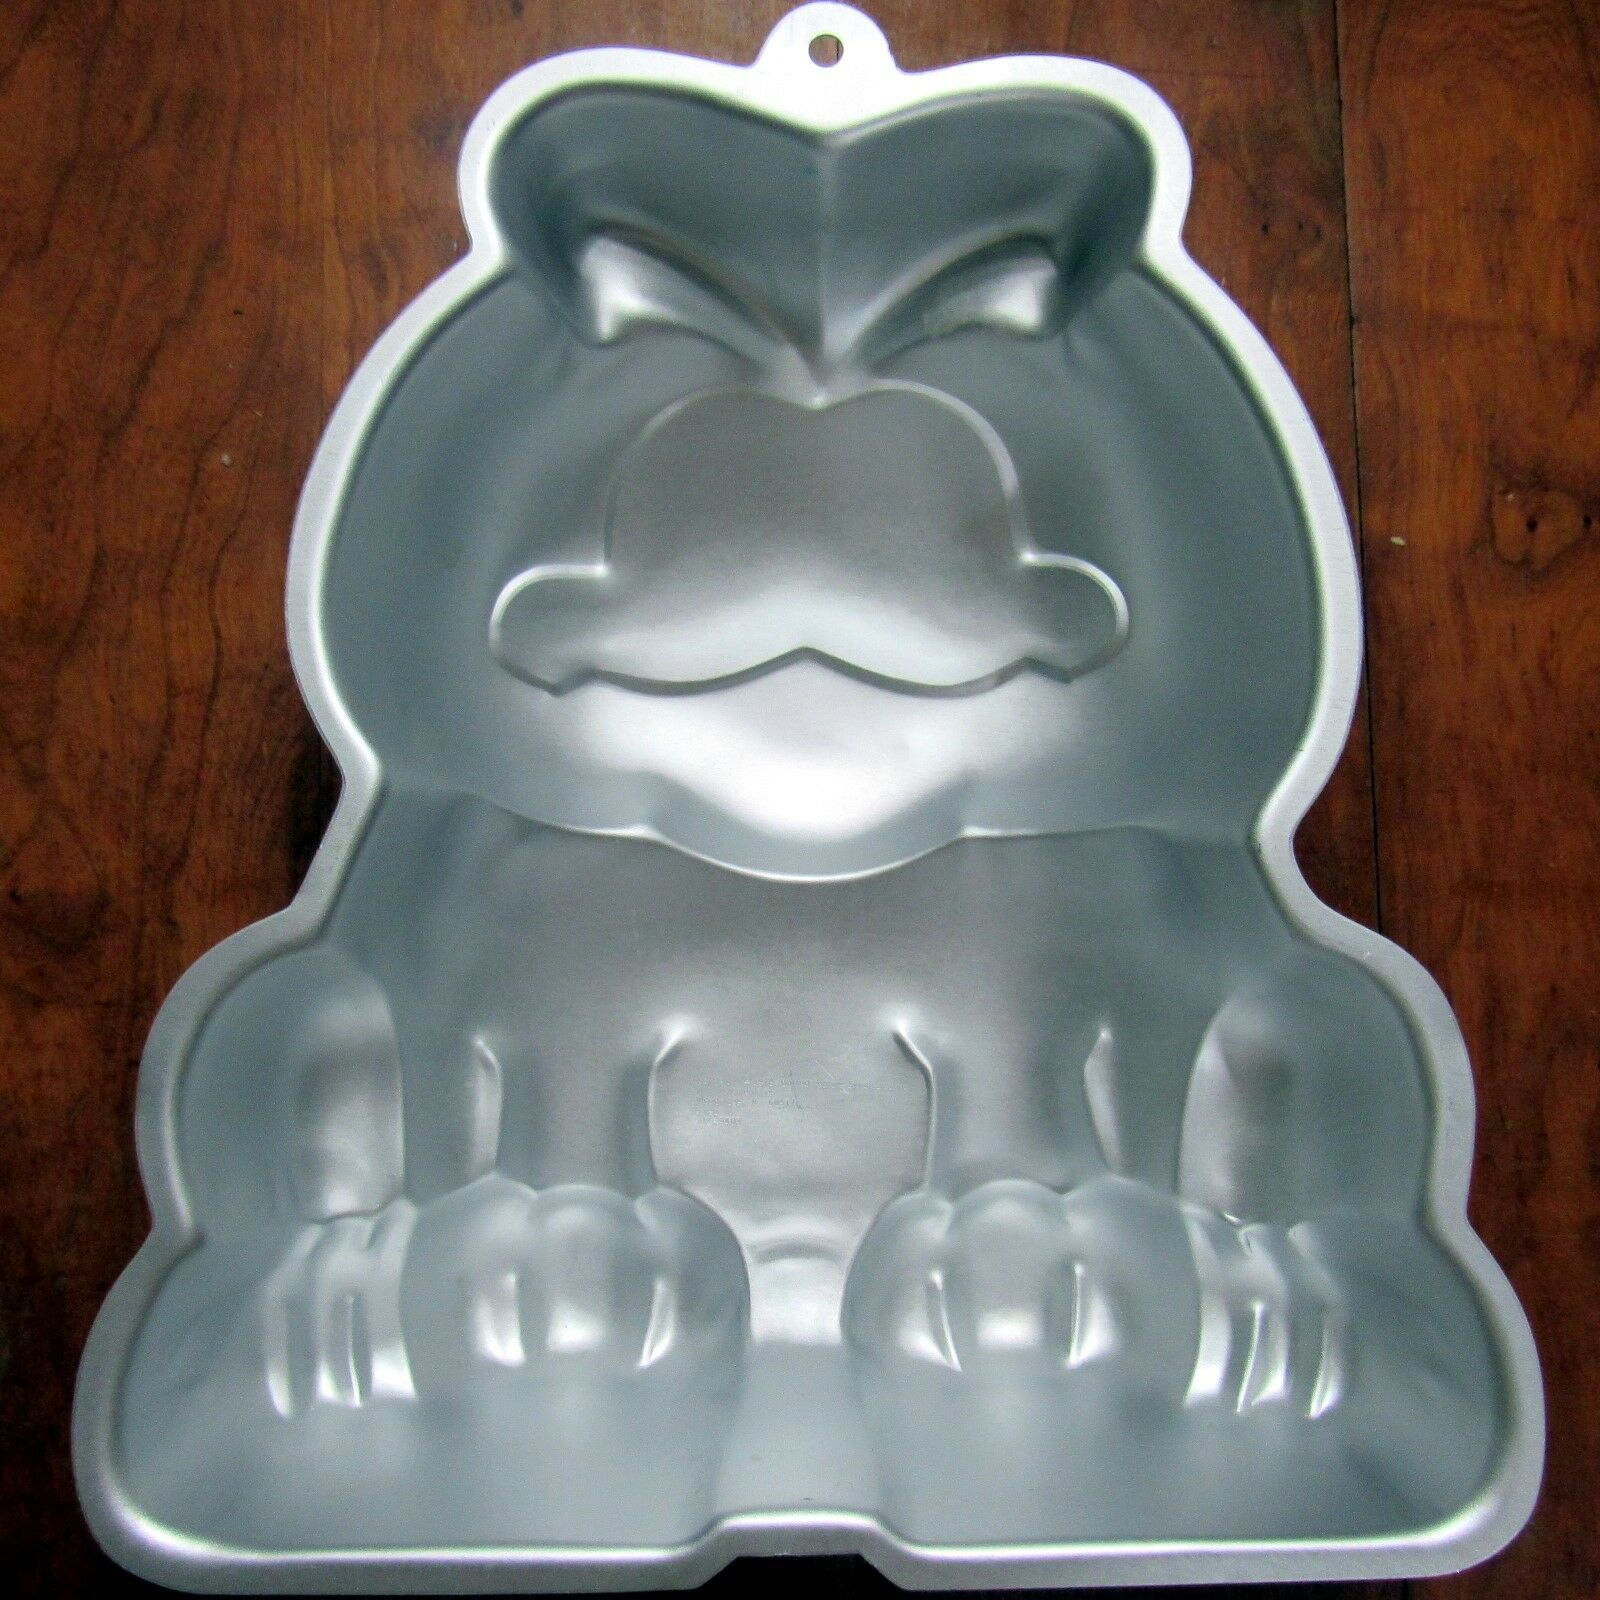 Garfield Stand Up Cake Pan Instructions